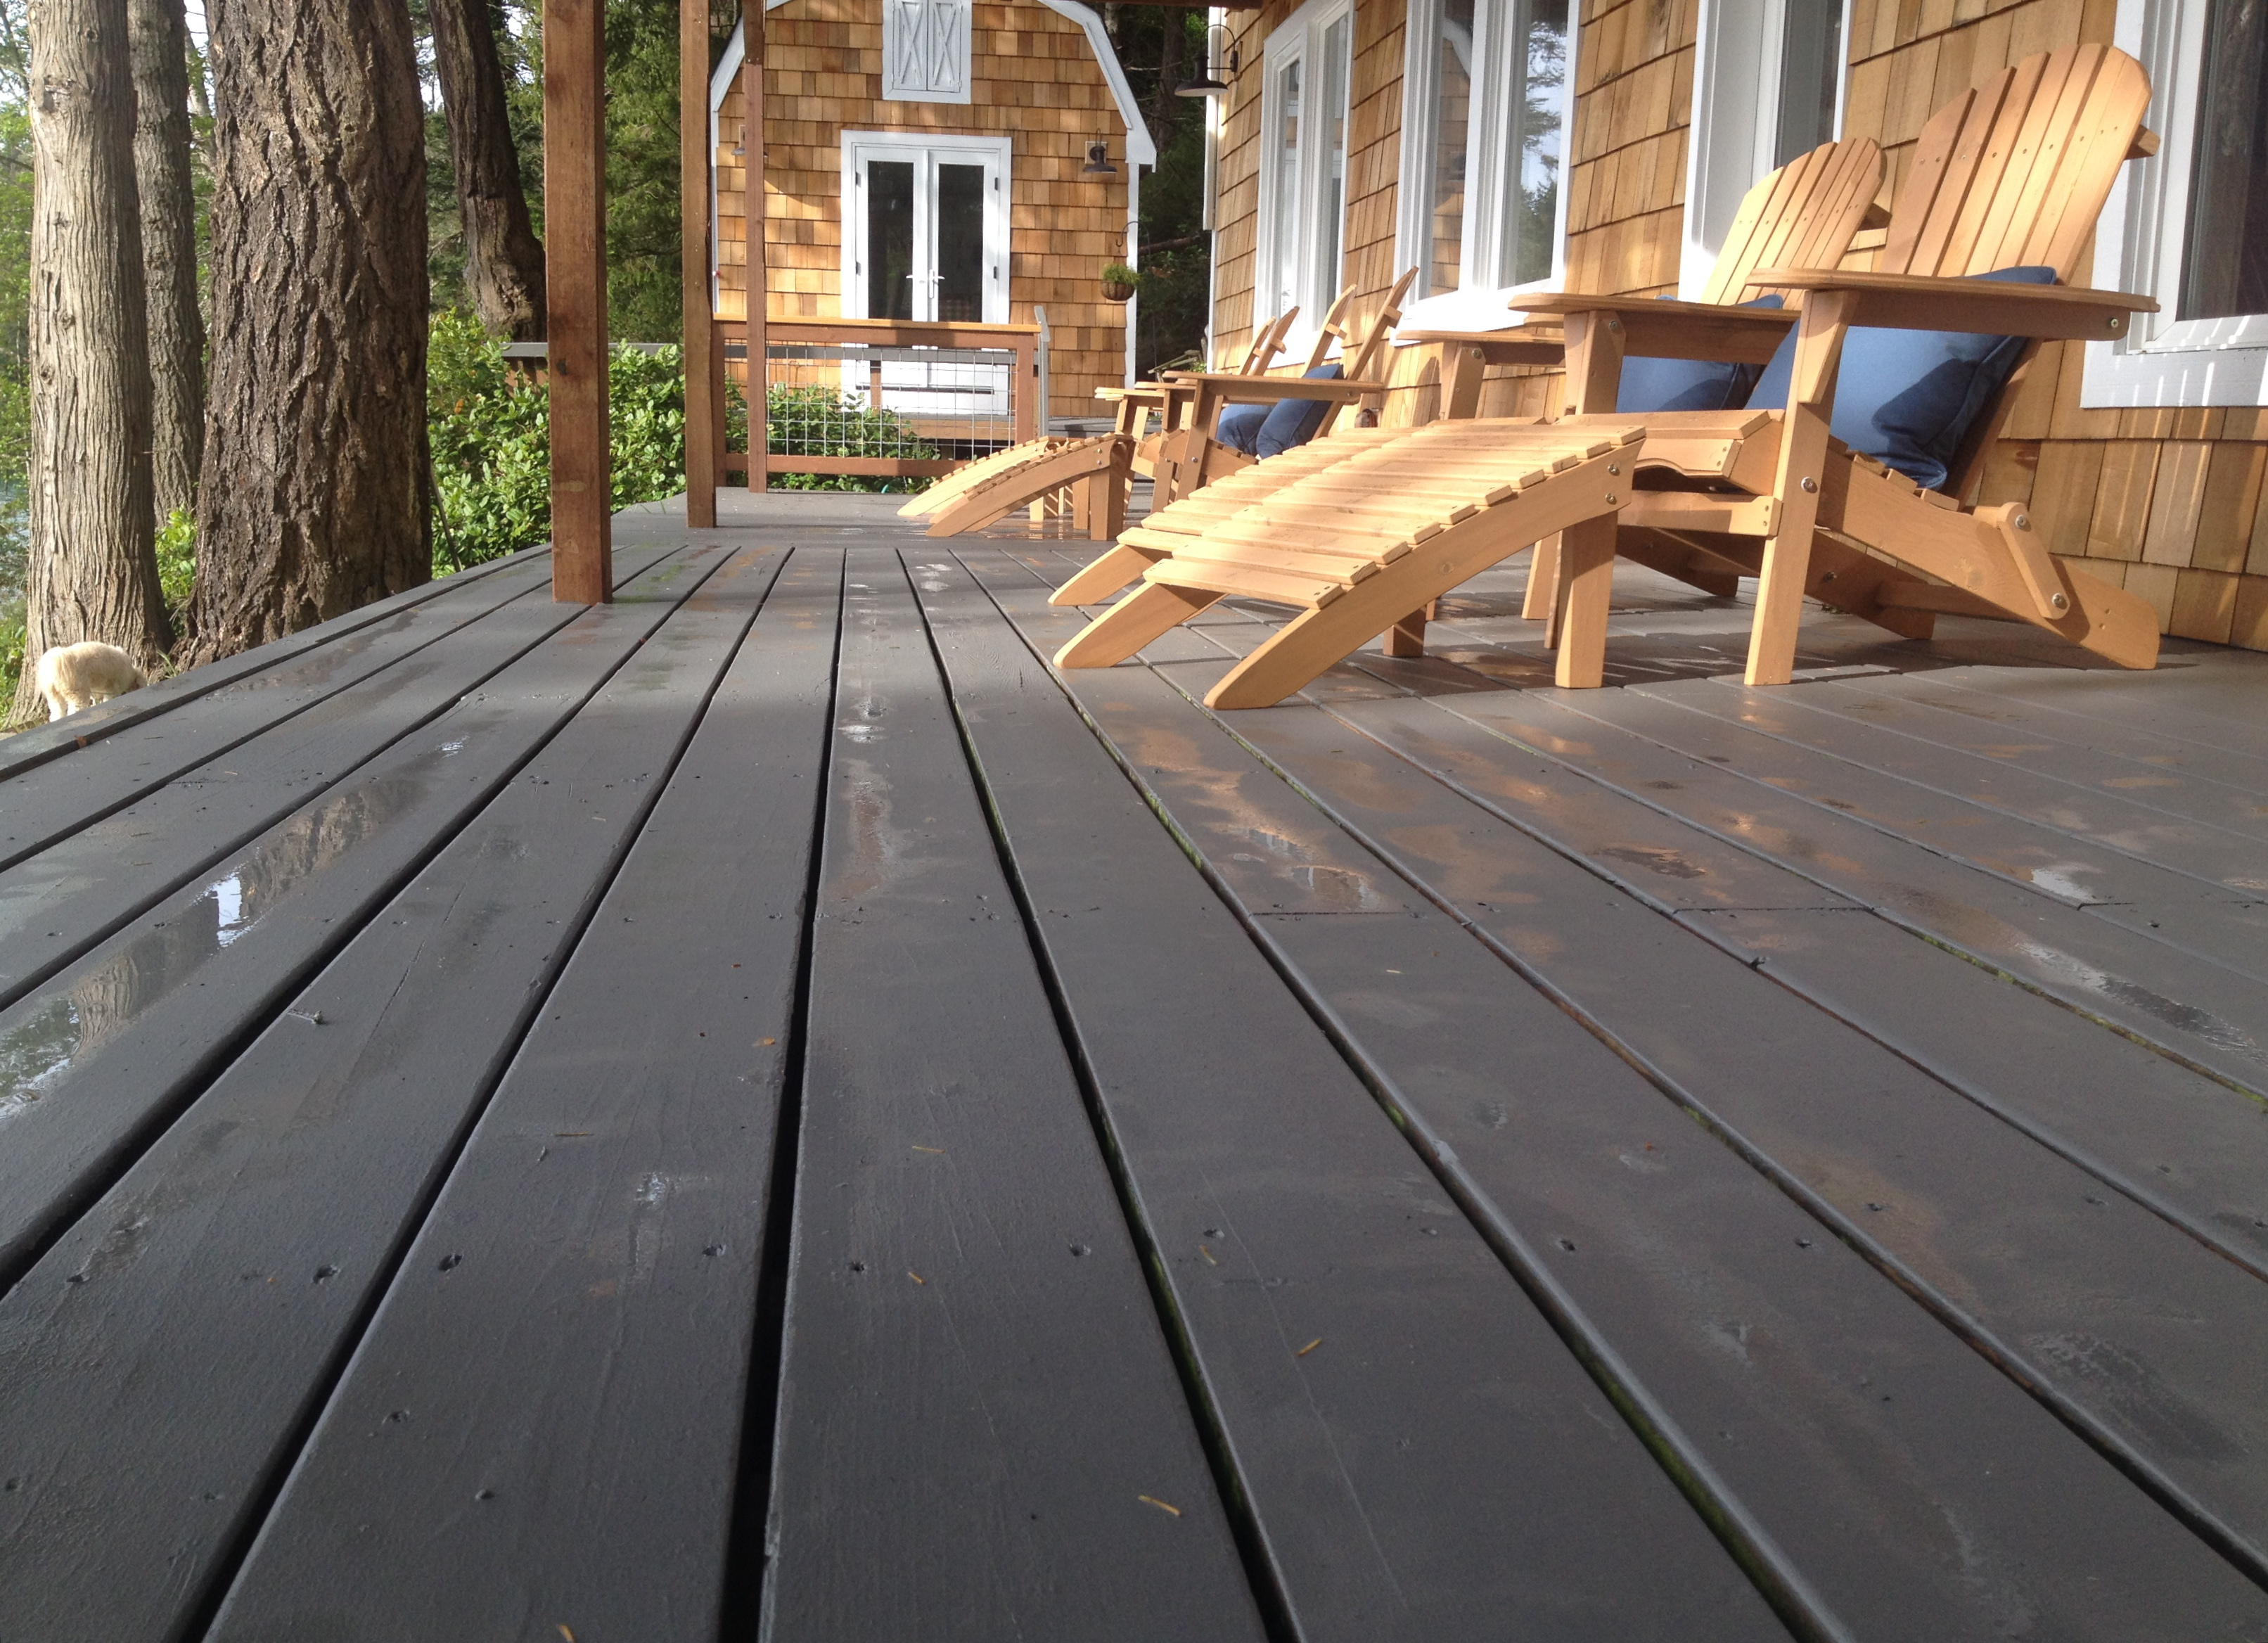 The color gray a little elbow room this weekend we painted 800 sq ft of decking around our island home what had been a dark brown red paint over cedar became a lighter gray and the house baanklon Images